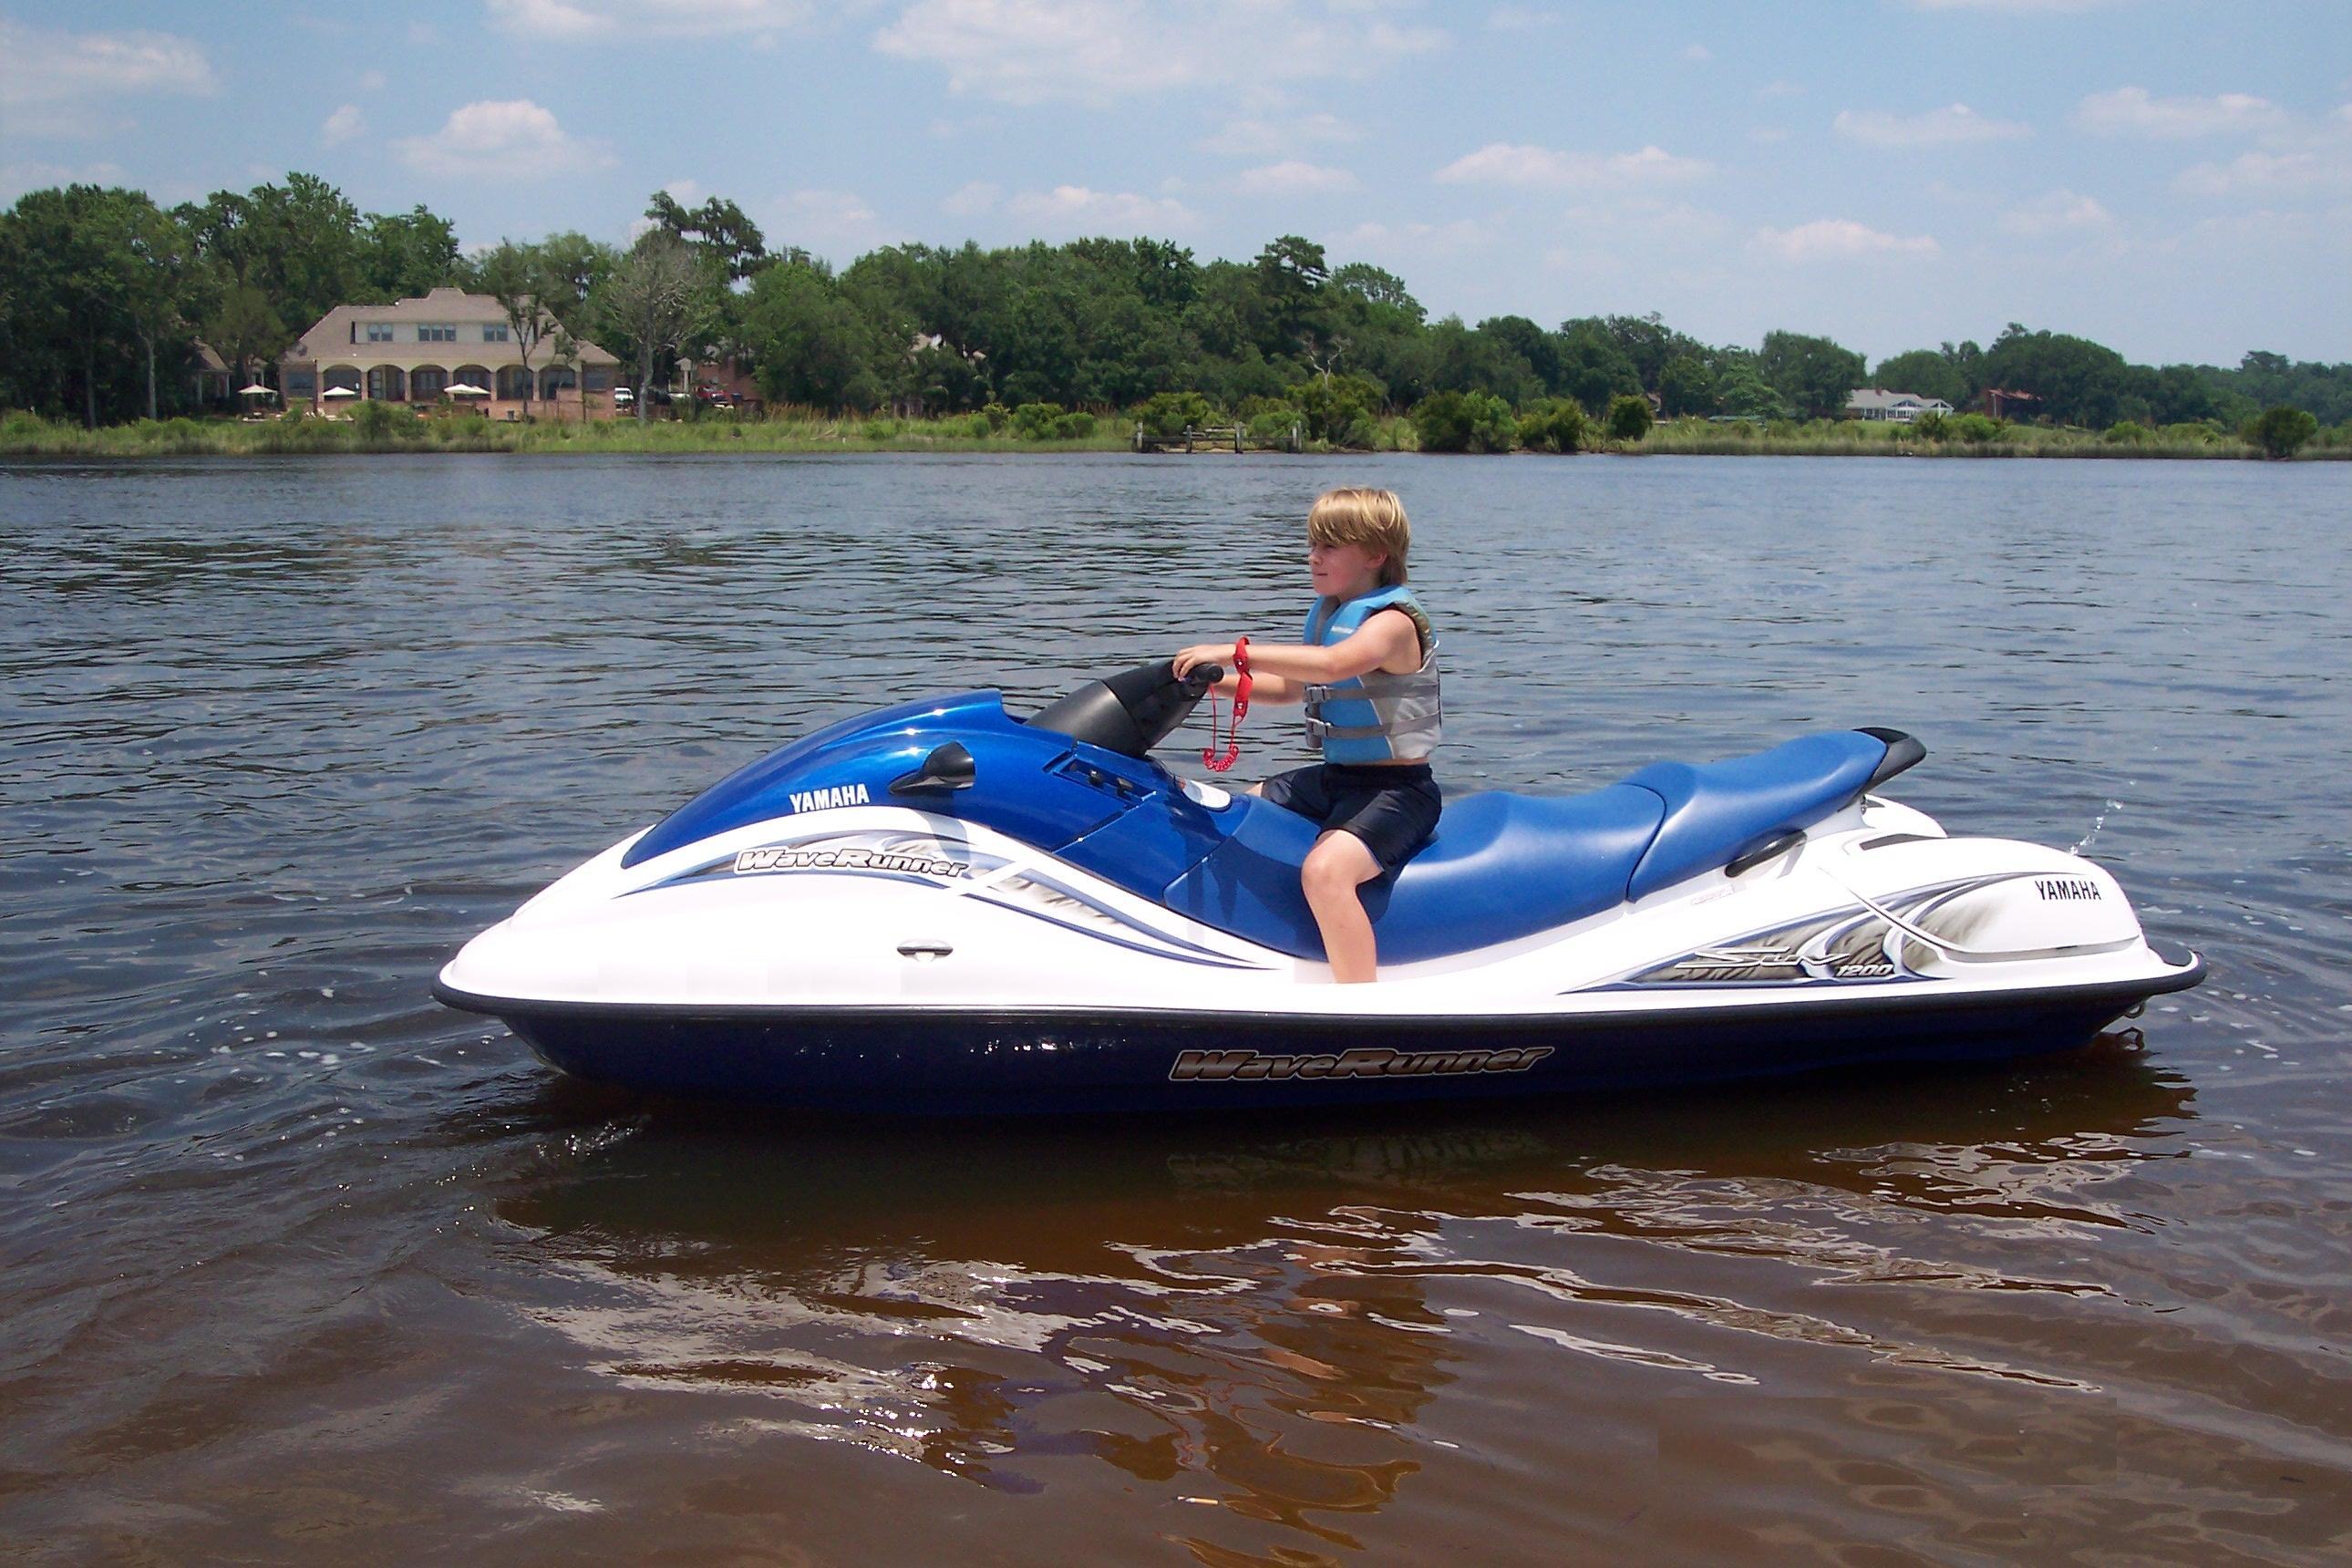 Used Yamaha Jet Skis For Sale In Maryland